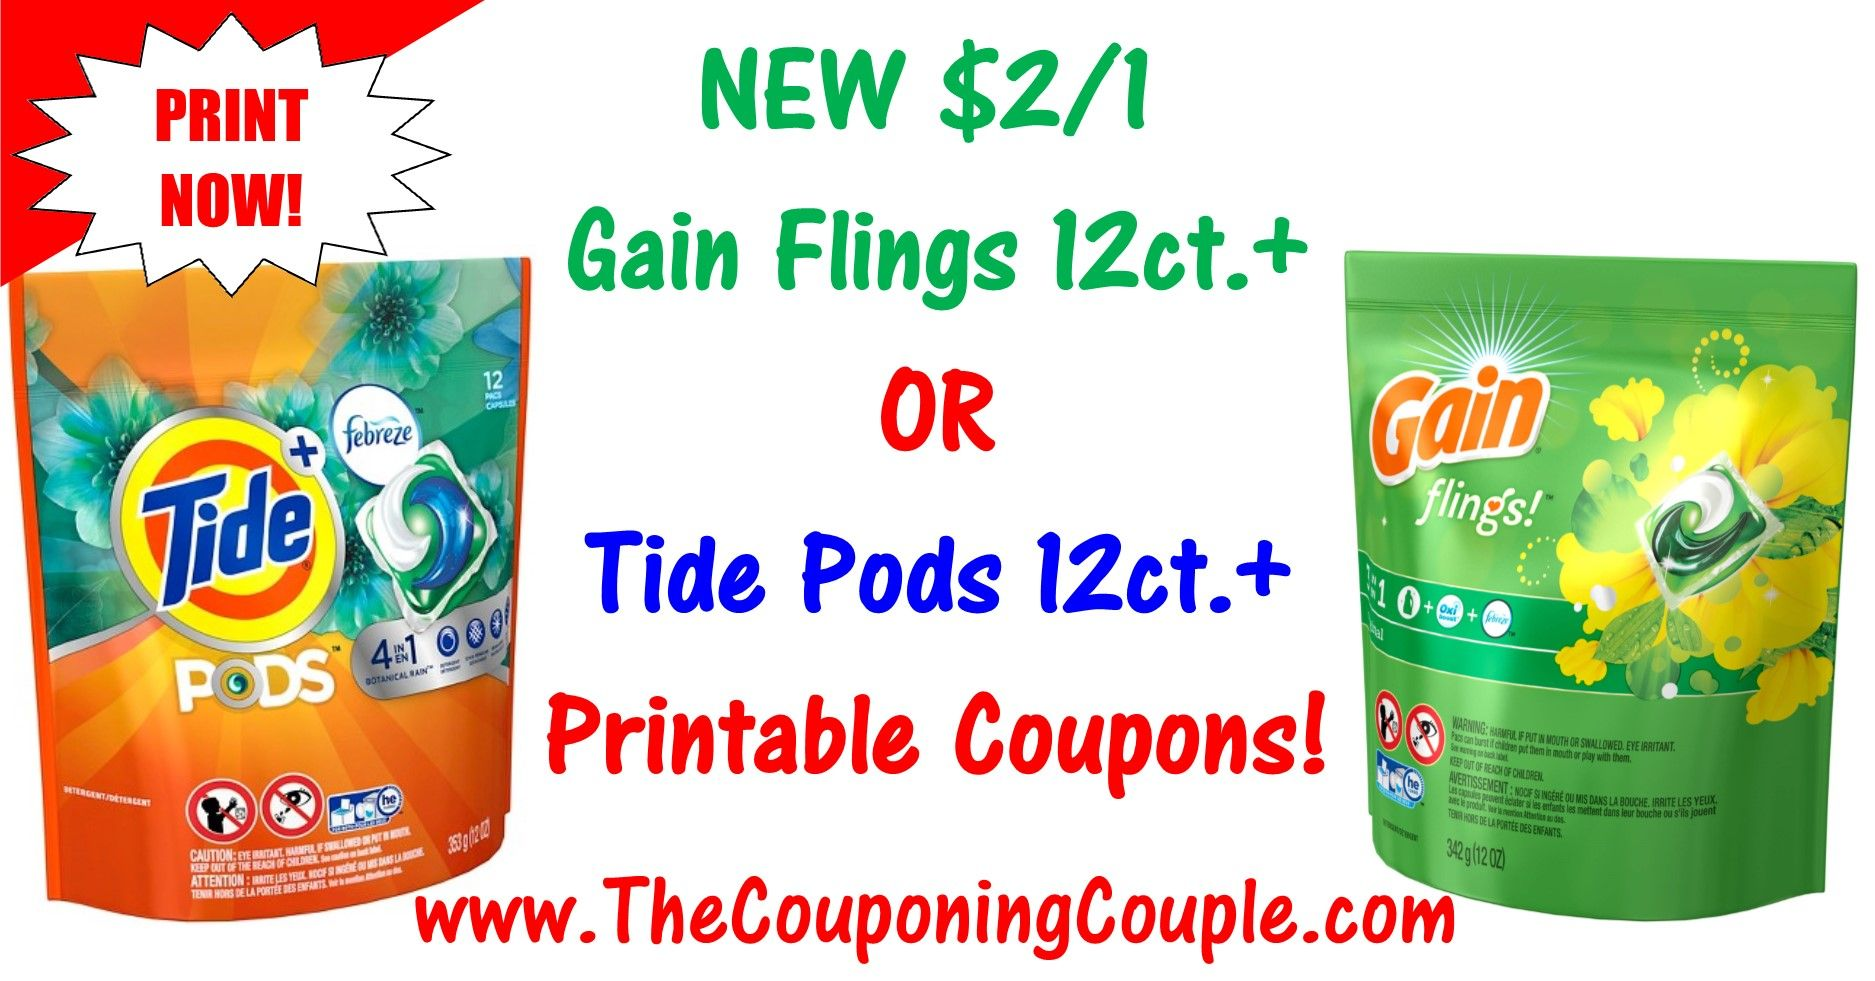 photo relating to Gain Printable Coupons identified as Contemporary Tide Pods Printable Coupon Income Flings Printable